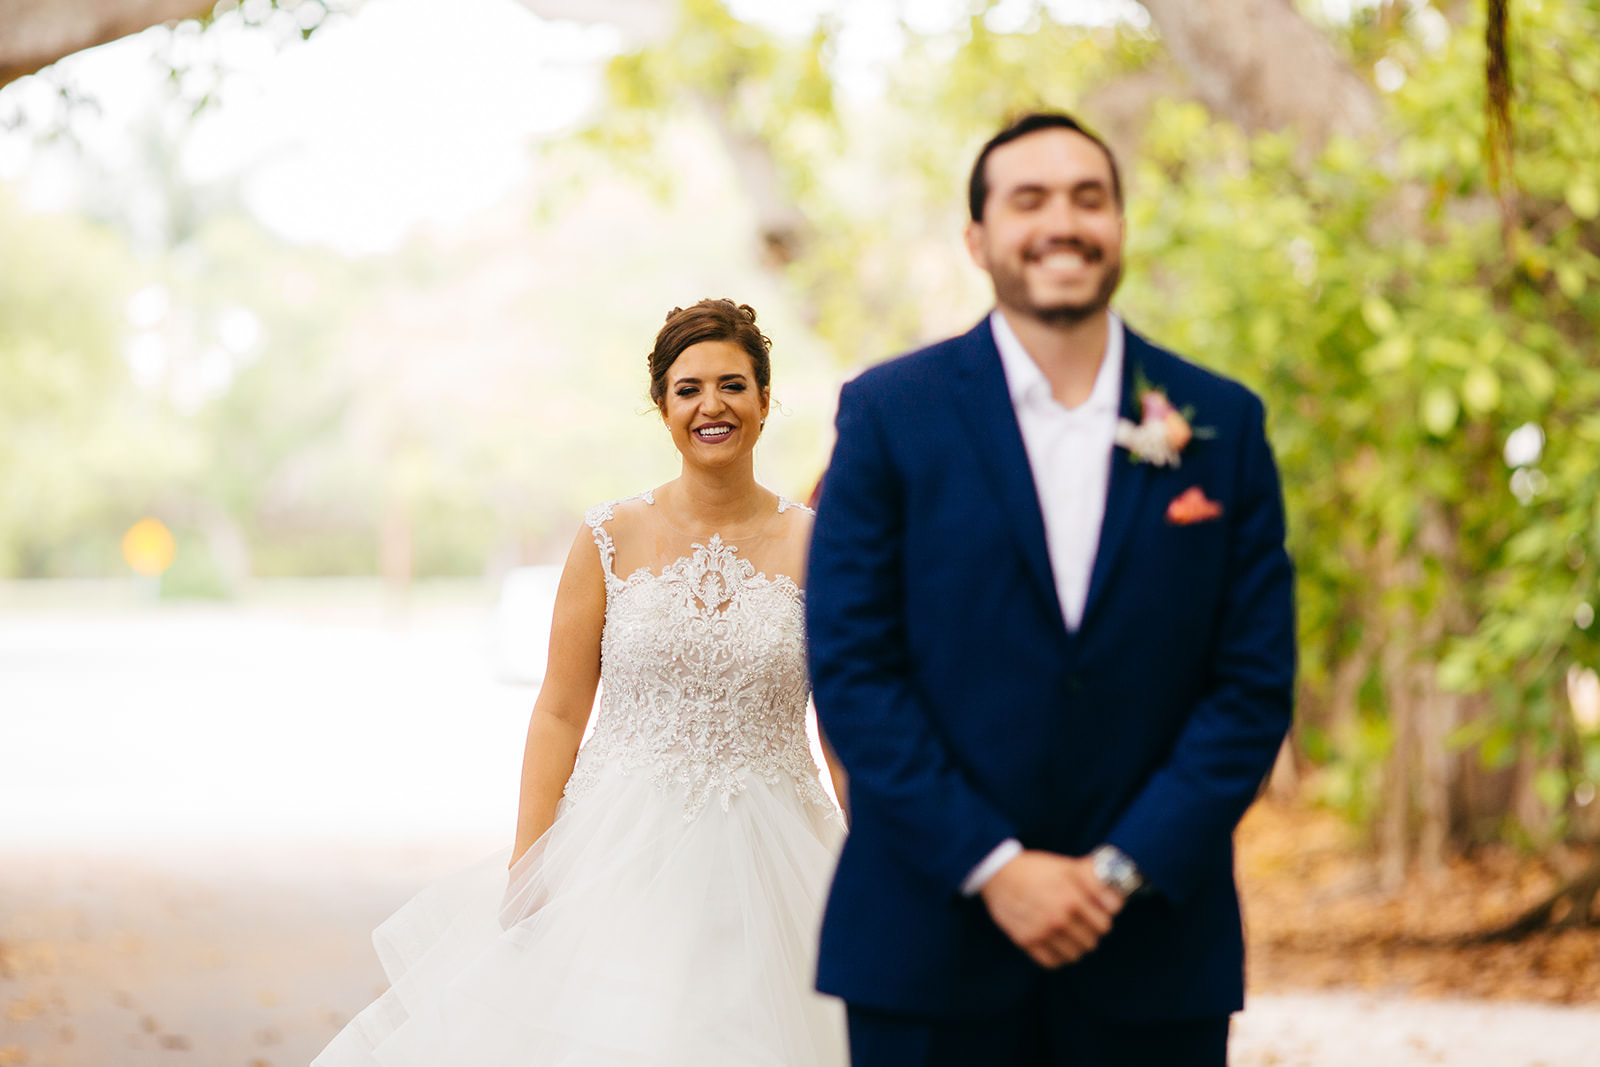 Tampa Bride and Groom First Look Photo